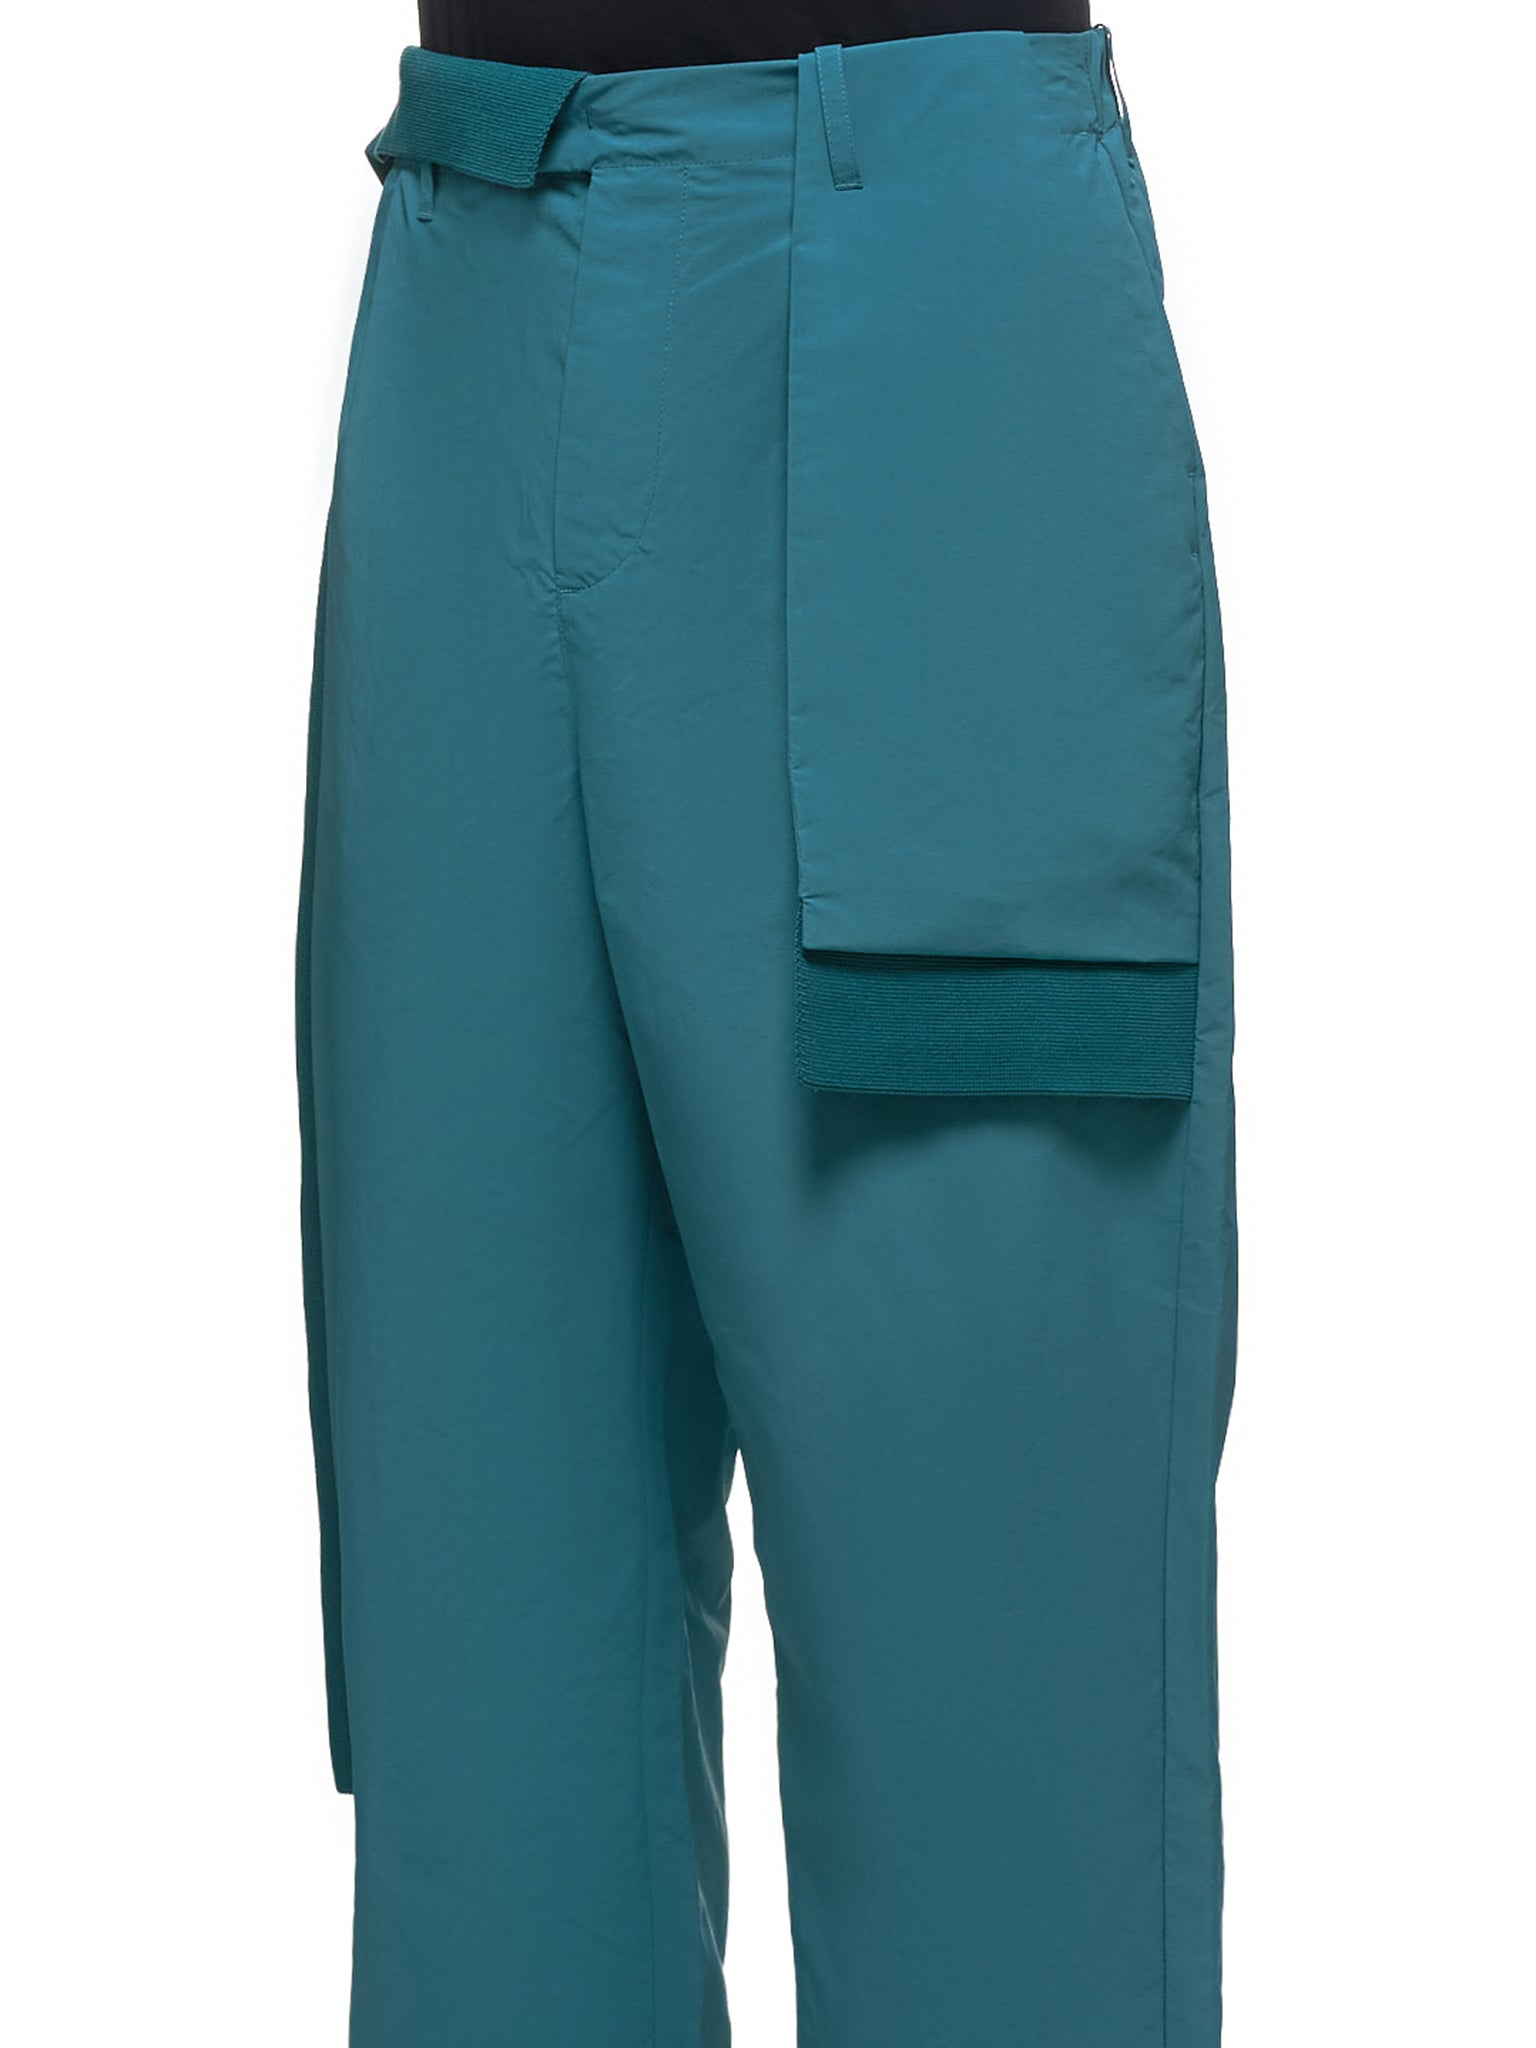 Craig Green Pants - Hlorenzo Detail 1